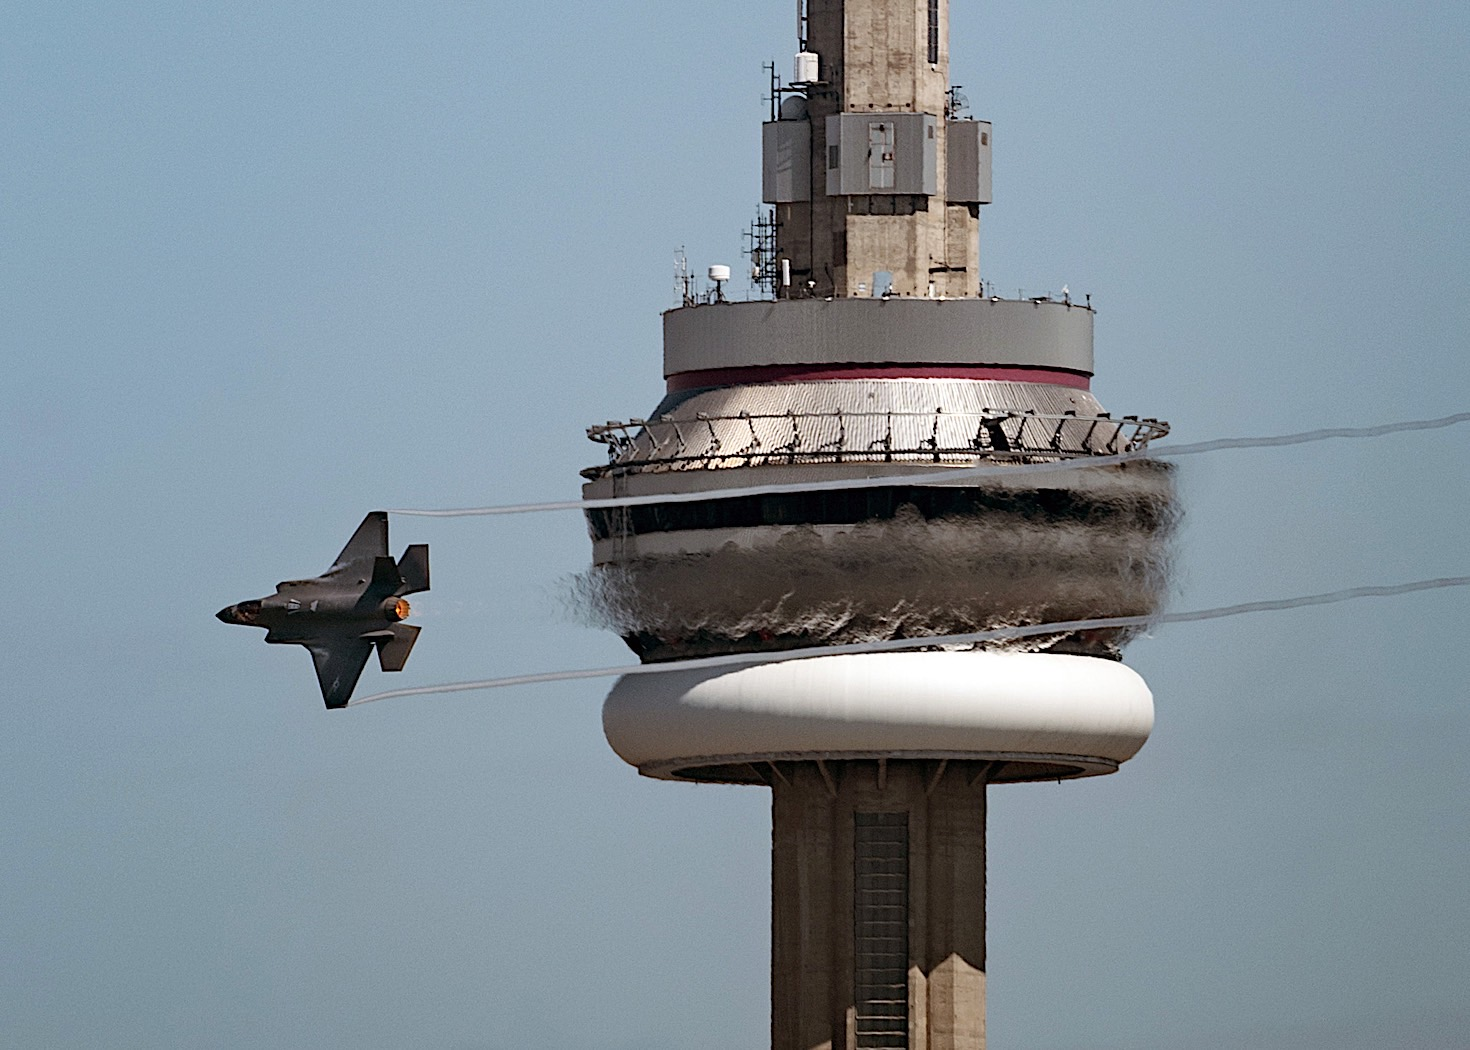 it's-time-to-buzz-the-cn-tower-for-this-f-35a-lightning,-and-it-does-just-that